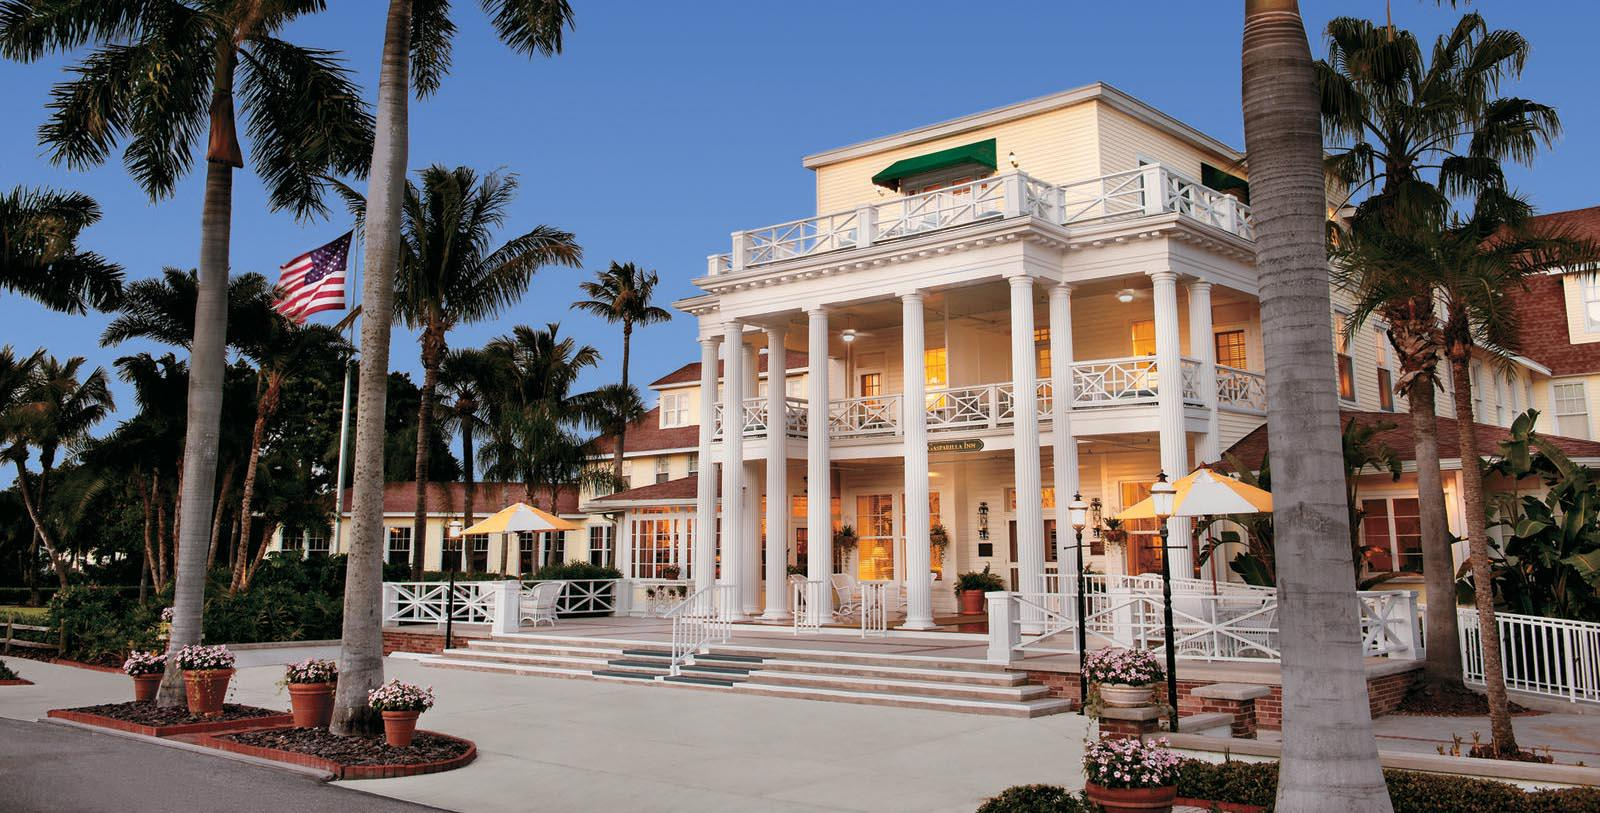 Image of Entrance The Gasparilla Inn & Club, 1913, Member of Historic Hotels of America, in Boca Grande, Florida, Overview